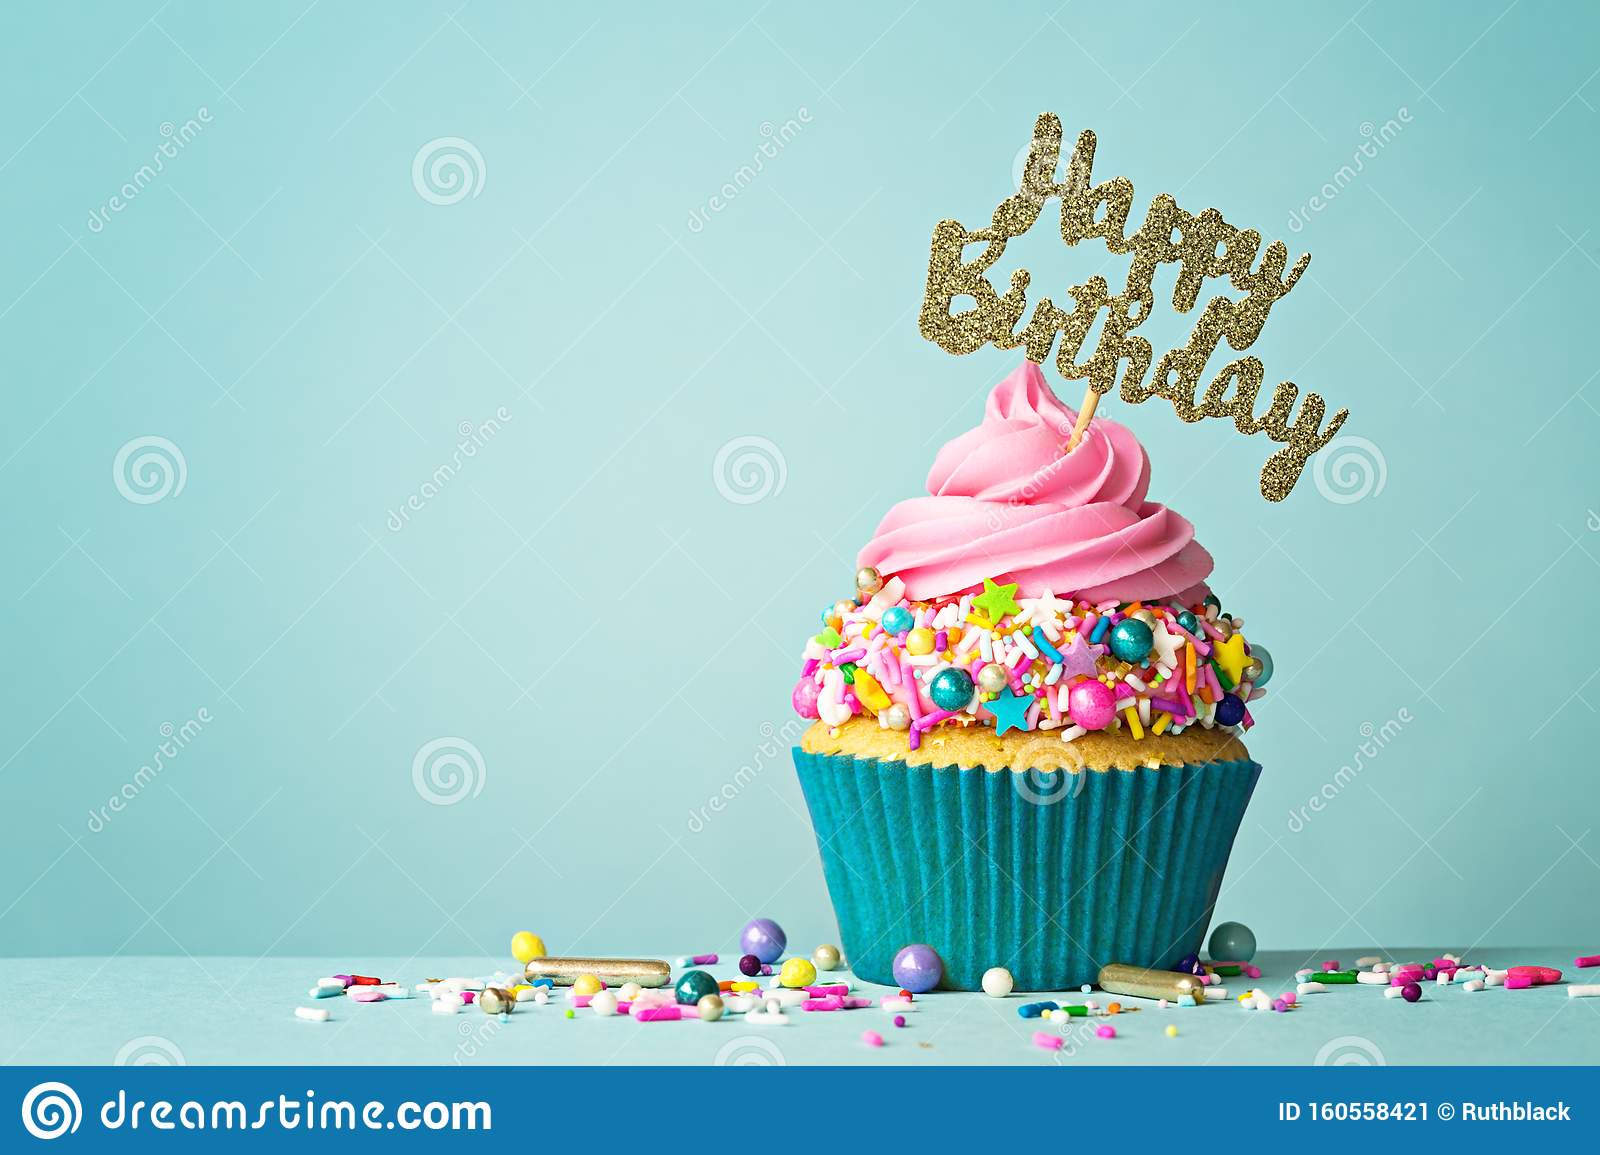 Phenomenal Happy Birthday Cupcake Stock Image Image Of Cupcakes 160558421 Personalised Birthday Cards Cominlily Jamesorg